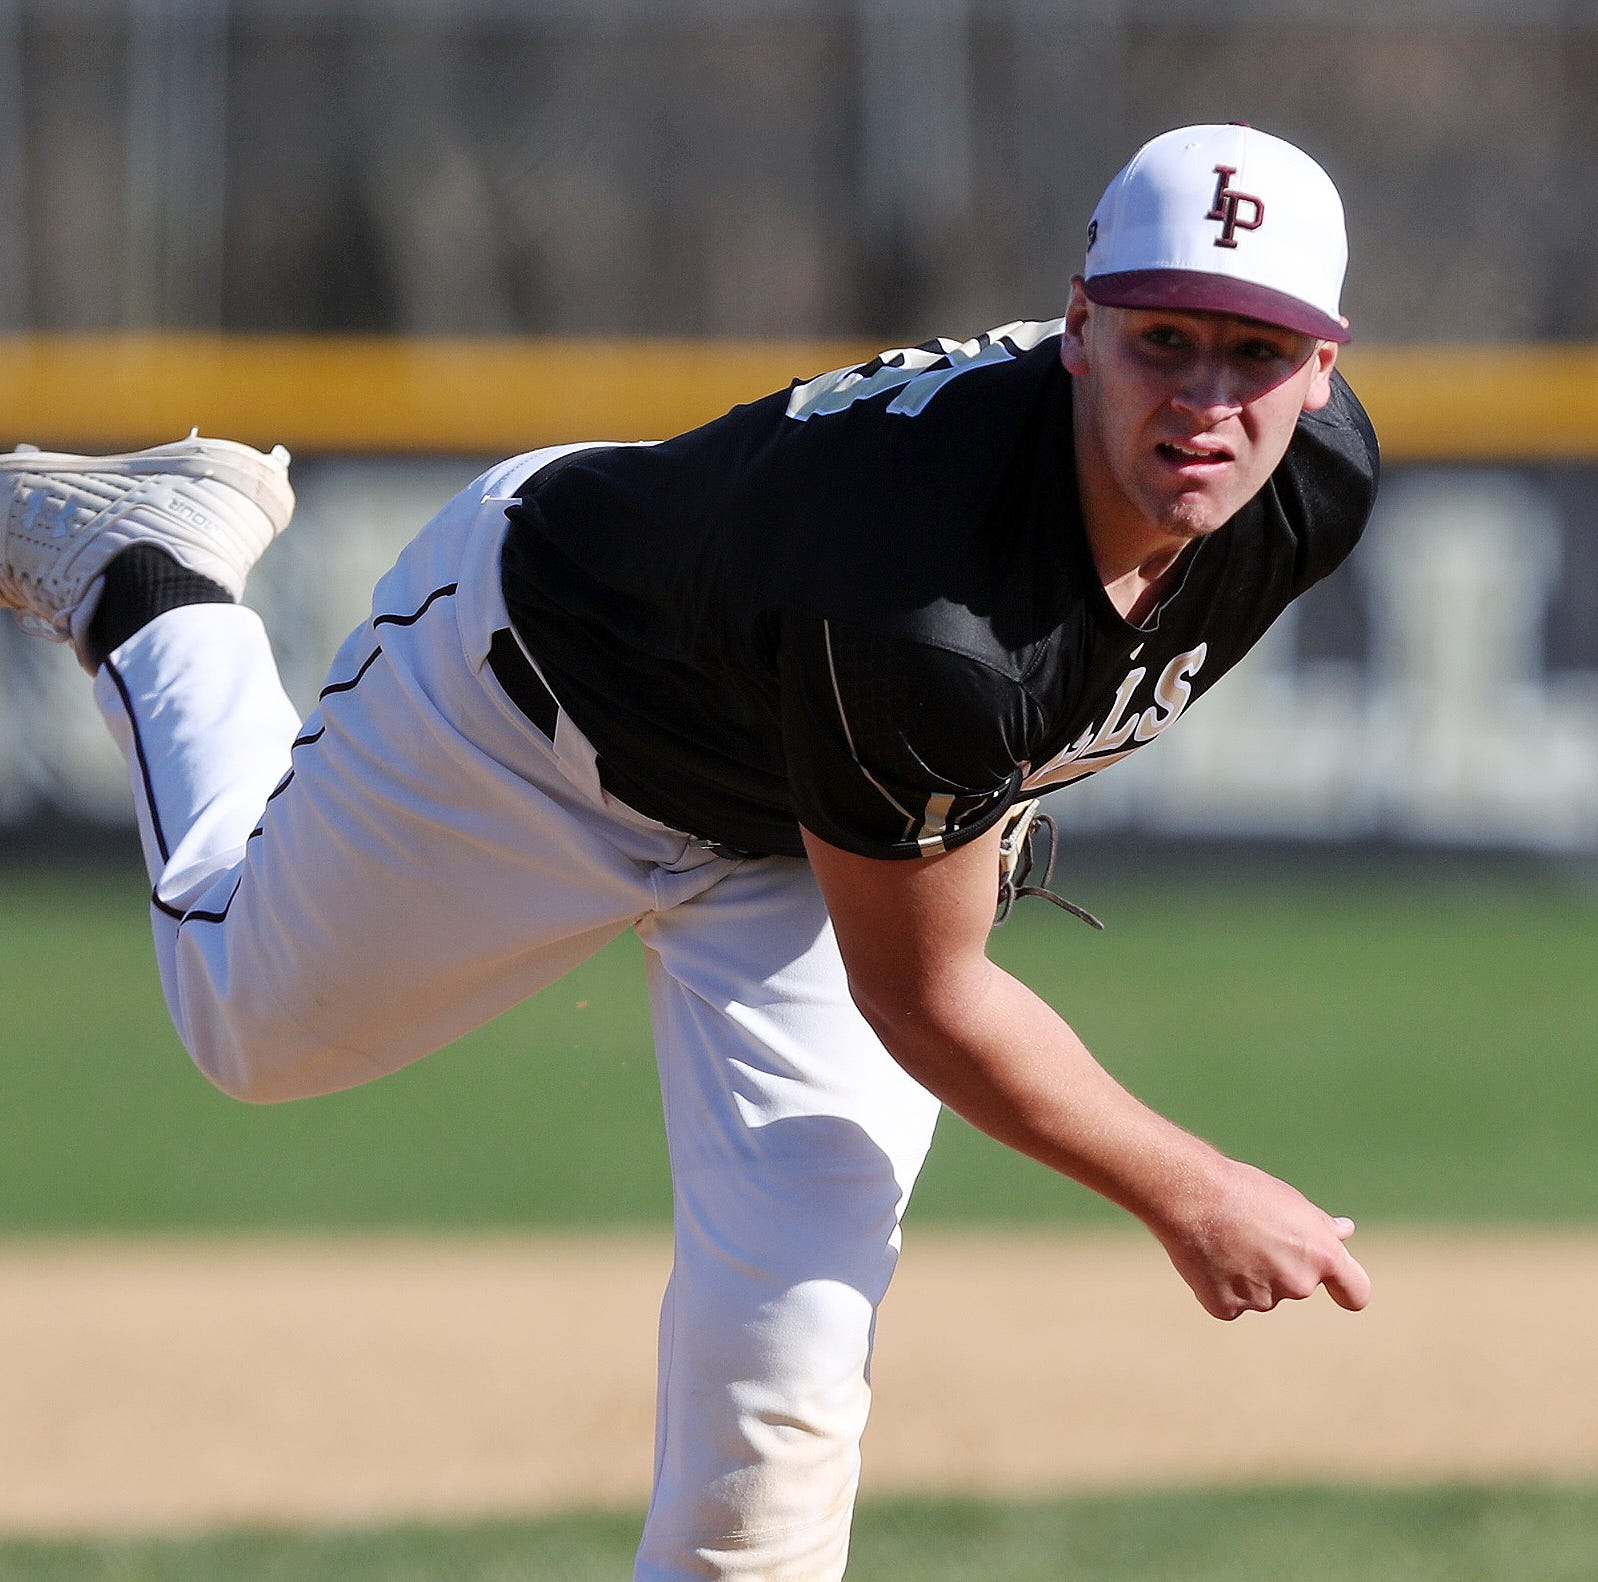 Baseball: Vote now for lohud's Player of the Week for May 13-19